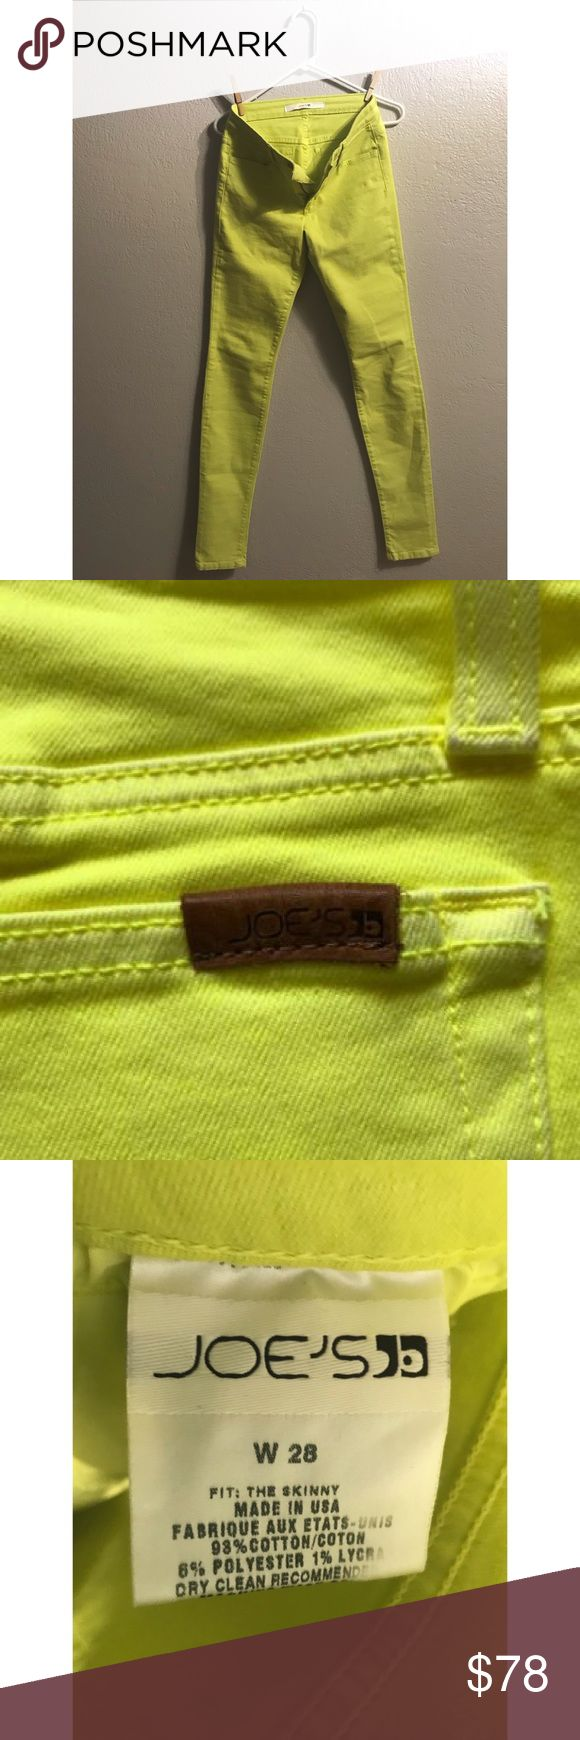 """Neon yellow/green Joes Jeans. Never worn, like new Put your party pants on! These highlighter yellow-green neon jeans will liven up any situation! 💛💚 Like new, never worn! They are in perfect condition! Legs are long, too long for me, I am 5""""4. Joe's Jeans Jeans Skinny"""